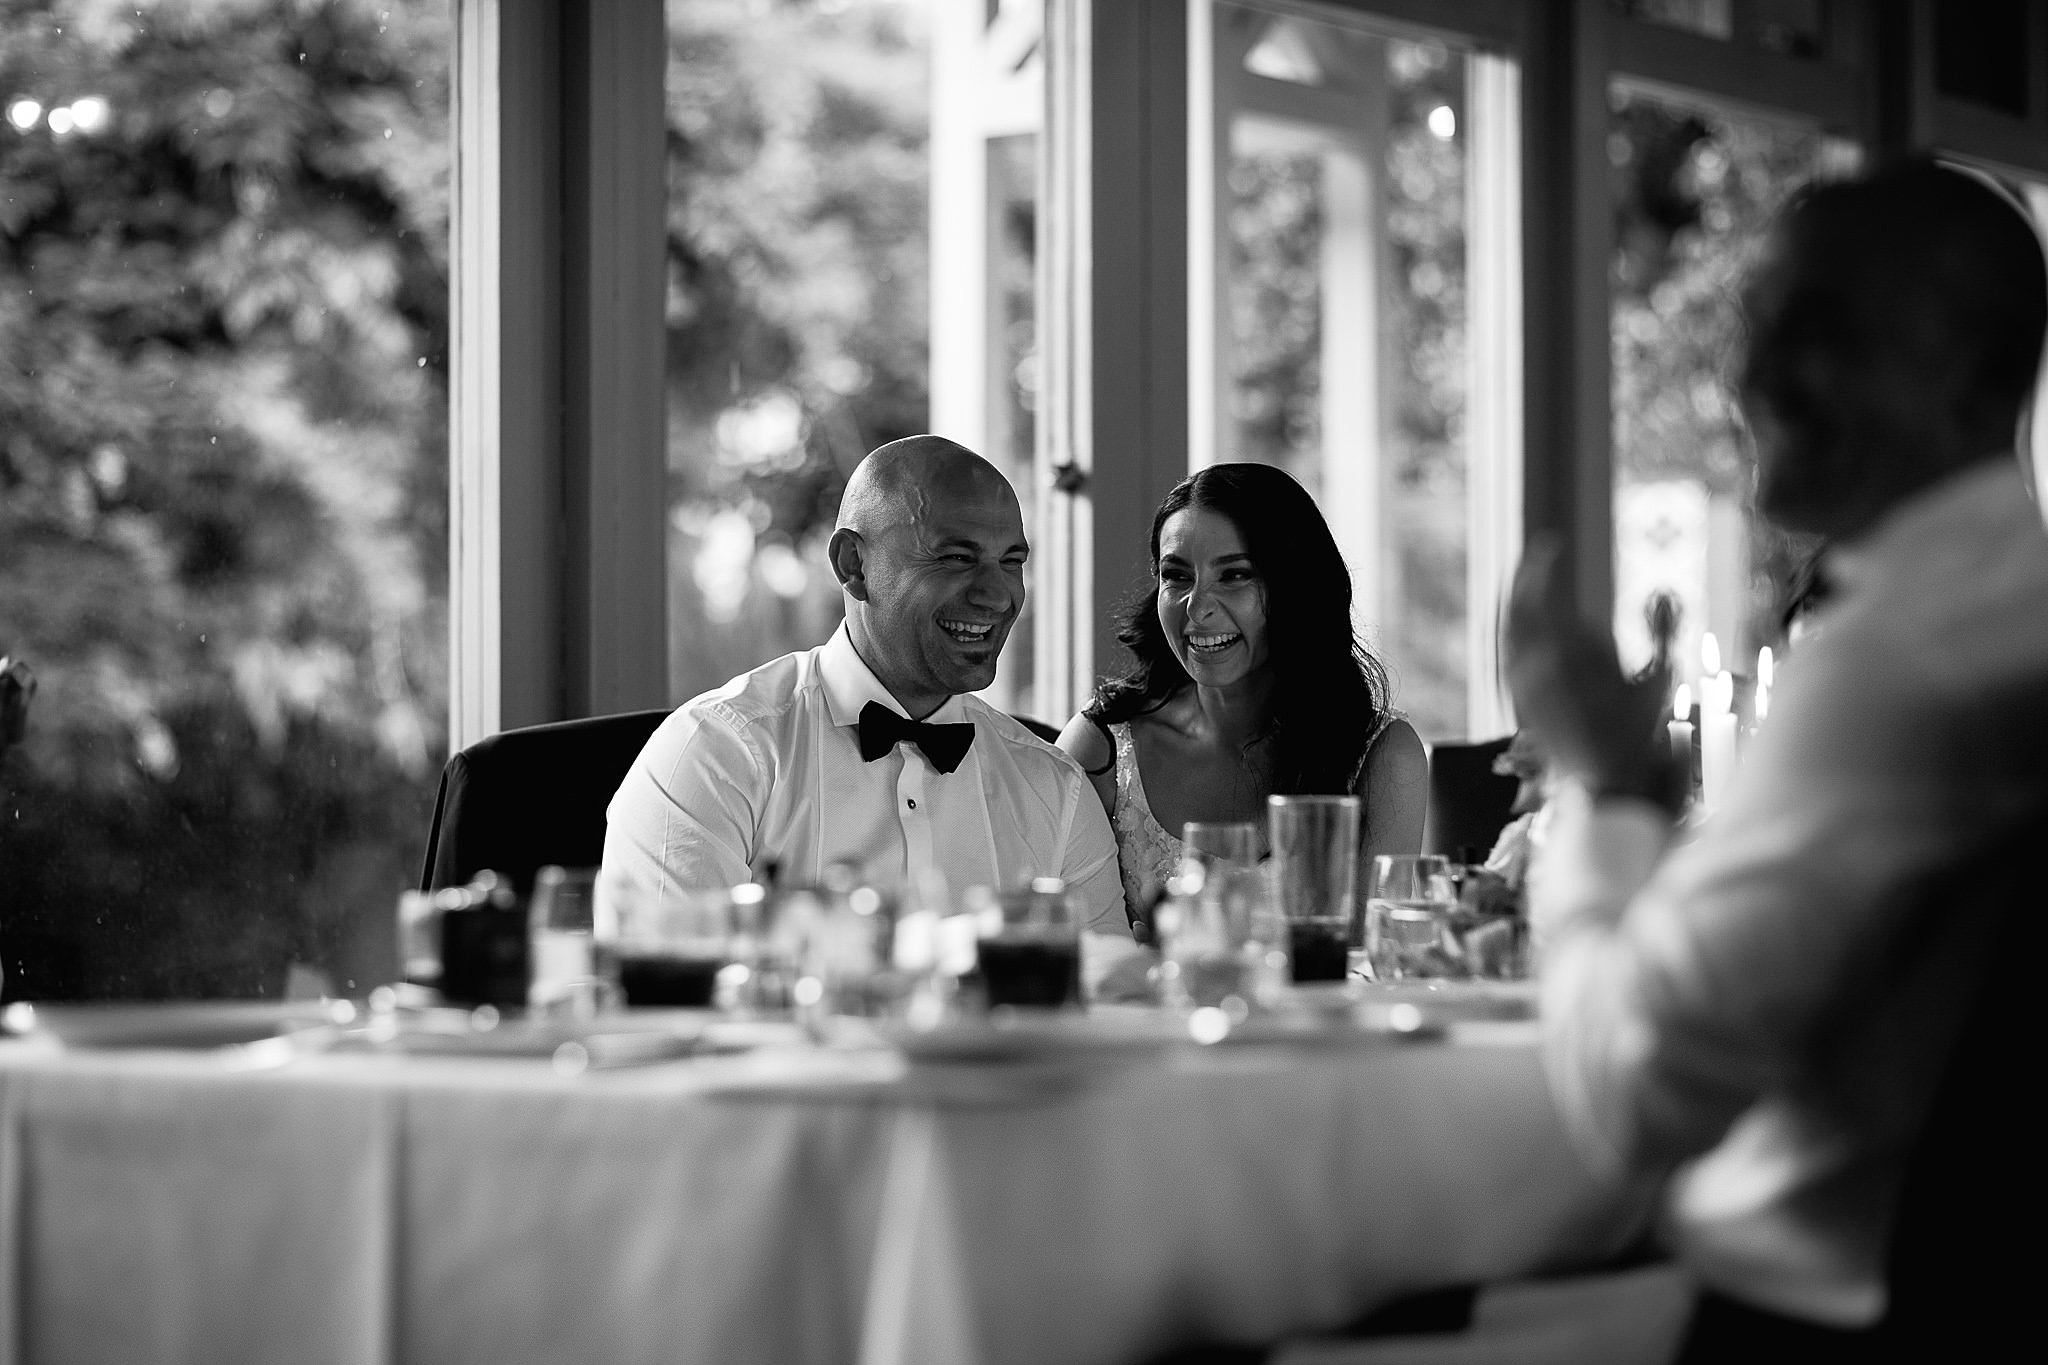 Keepsakephoto by the Keeffes,Wedding,ACT wedding photographer,ACT weddings,Canberra Wedding Photographer,Canberra Wedding Photography,canberra weddings,destination wedding,La Ombre Creations,peony n pearl,canberra florist,Canberra Portrait Photography,Canberra Photography,